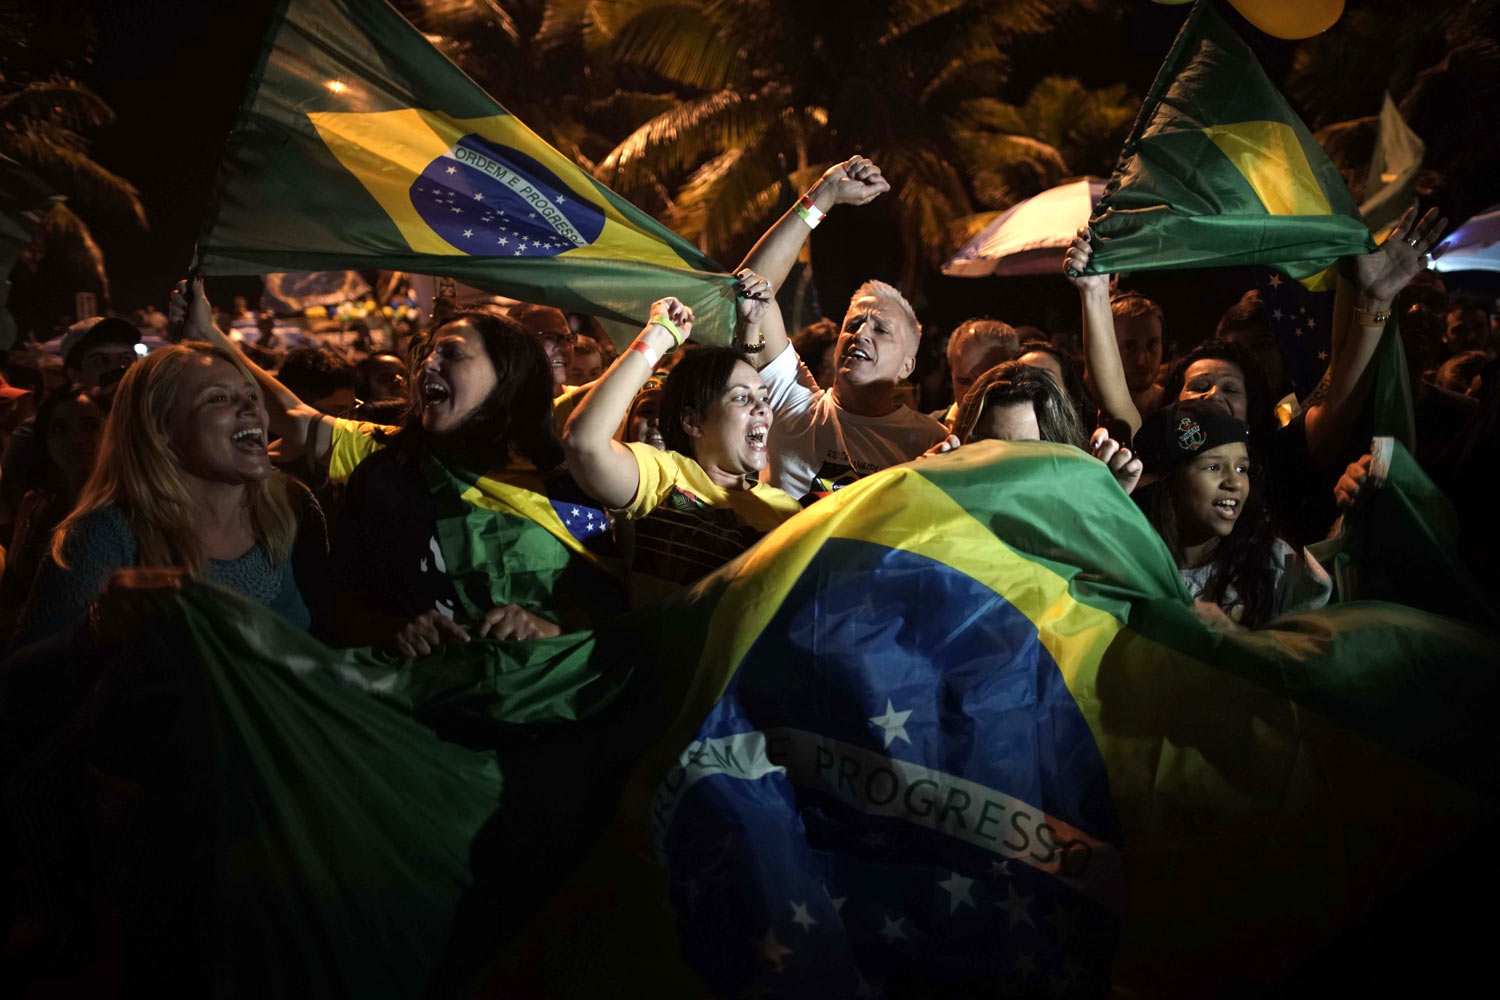 Supporters of Jair Bolsonaro celebrate in front of his residence in Rio de Janeiro, Brazil, Sunday, Oct. 28, 2018. The far-right congressman took a commanding lead in the race for Brazil's presidency, as voters apparently looked past warnings that the former army captain would erode democracy and embraced a chance for radical change after years of turmoil. (AP Photo/Leo Correa)